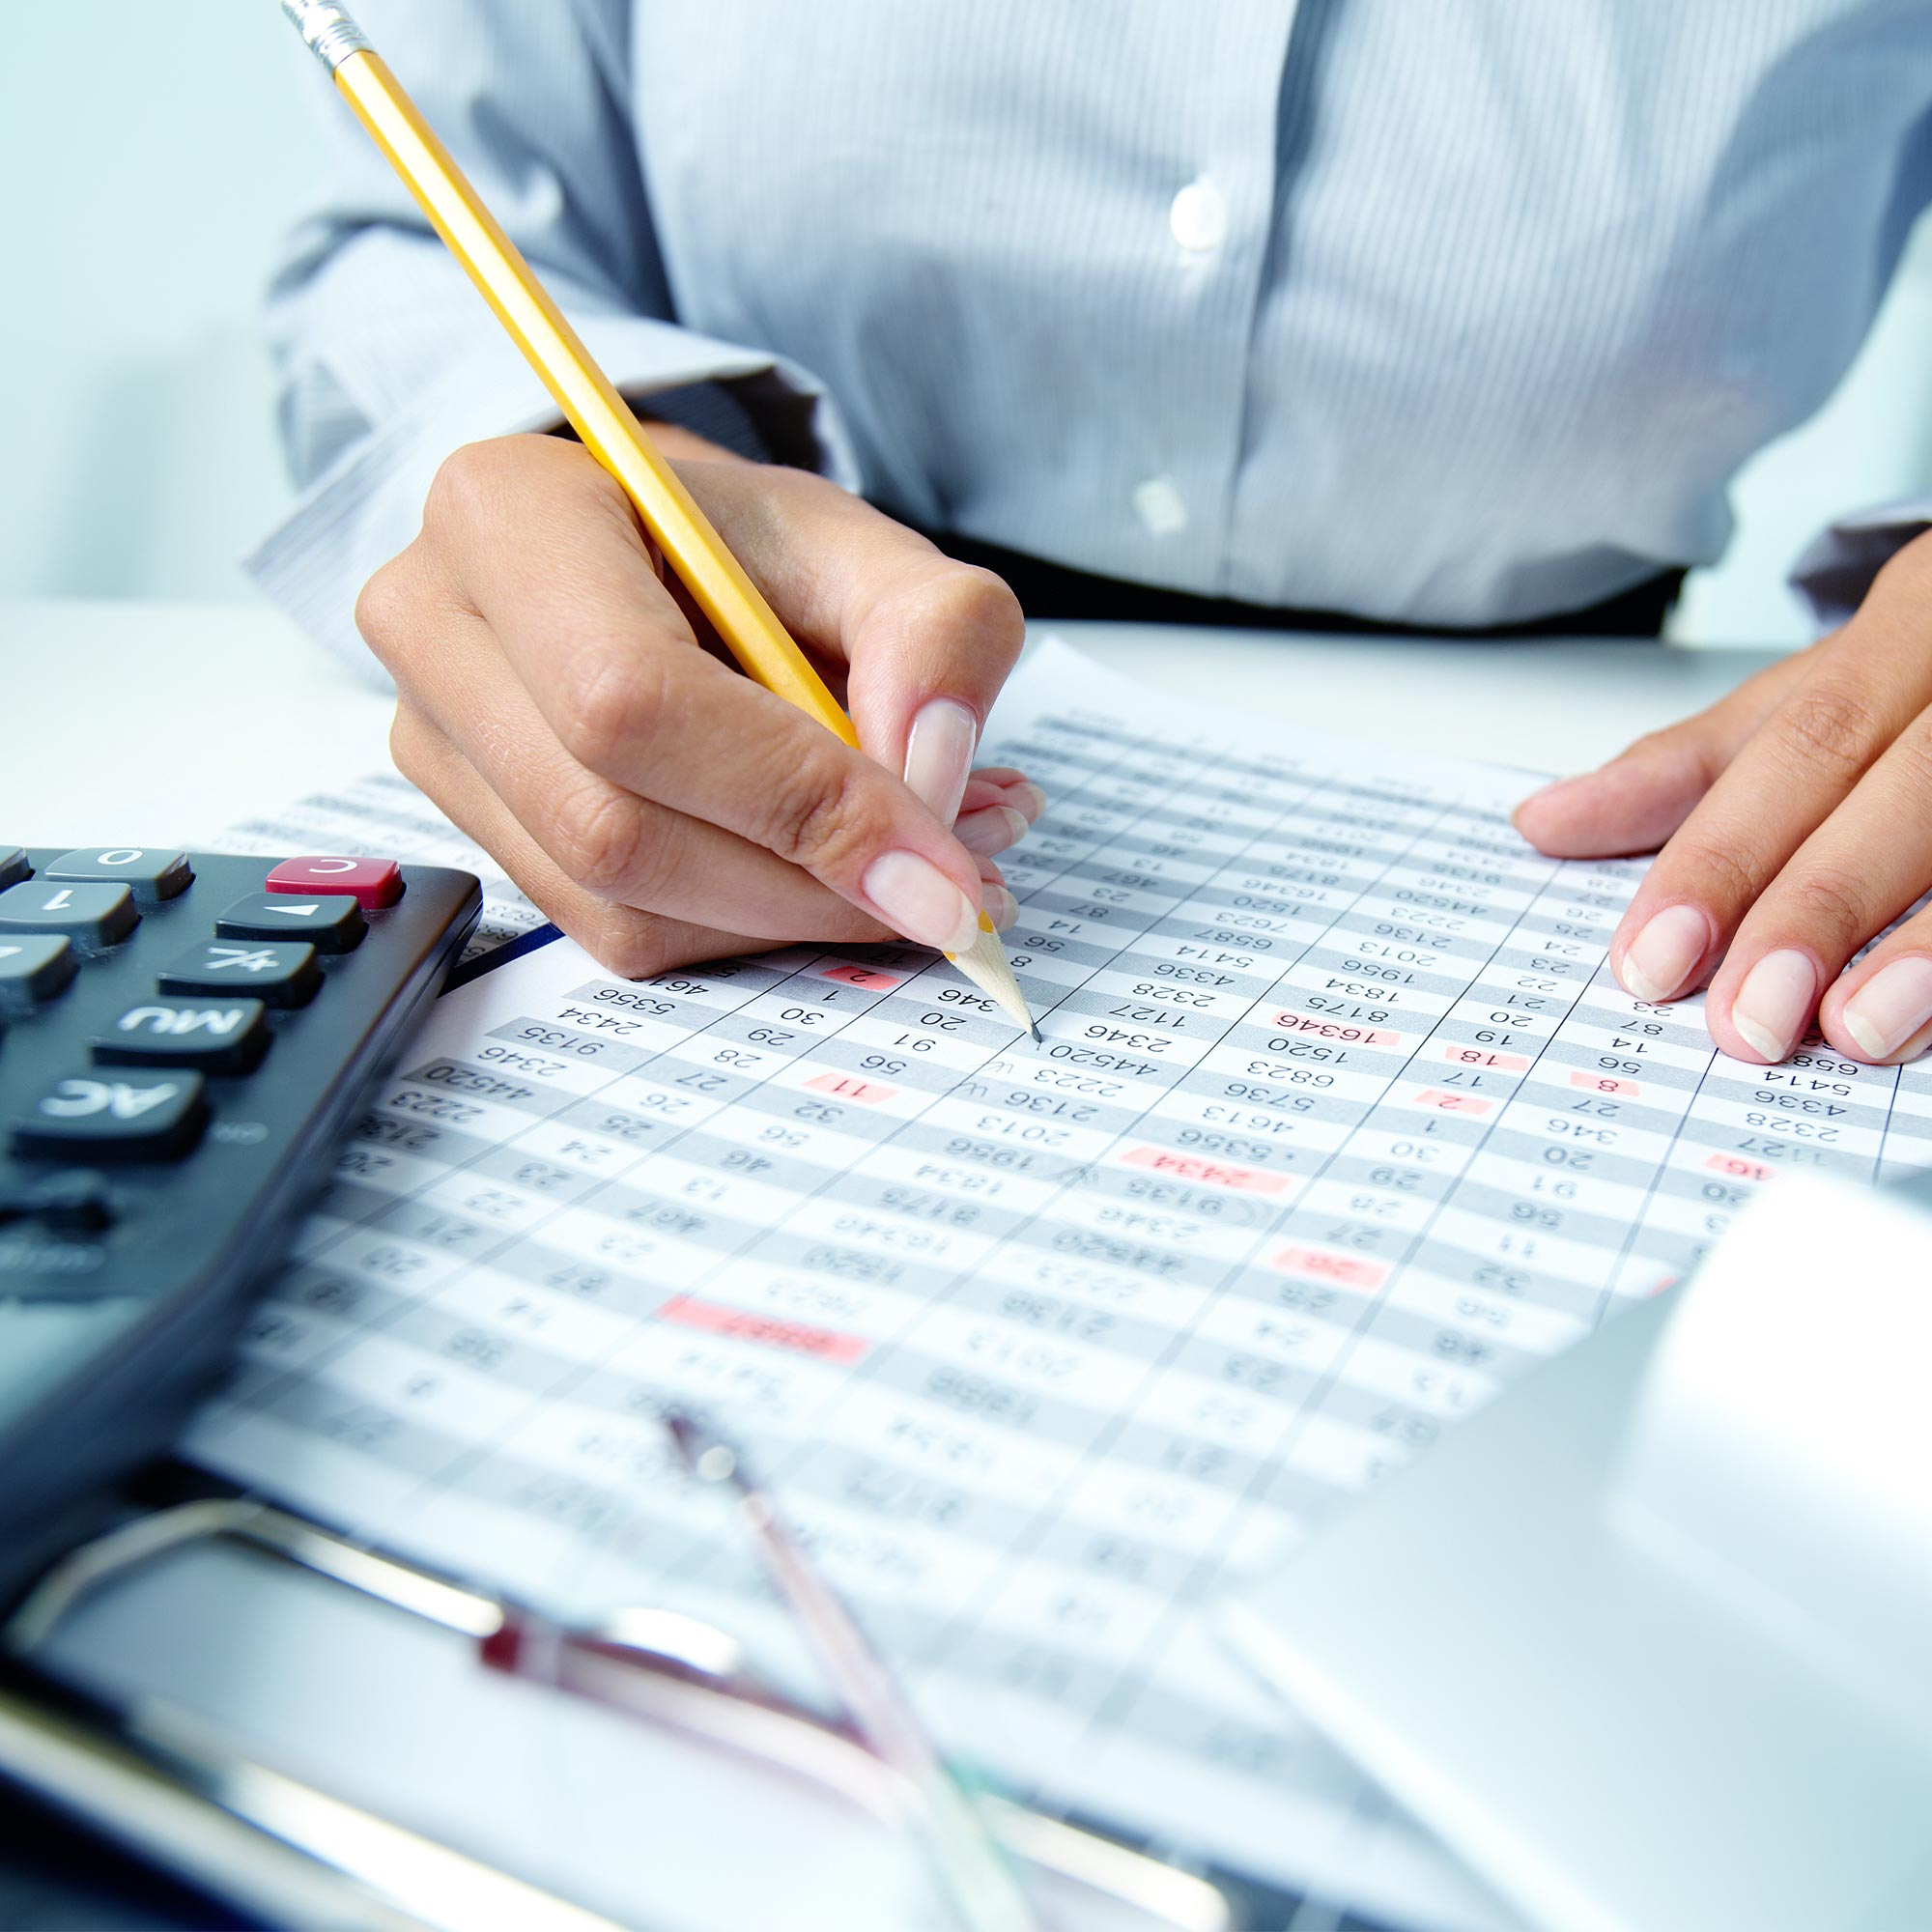 Accountant business woman's hands. Counting numbers with calculator and a pencil in hands. Accounting, tayes and payroll services.